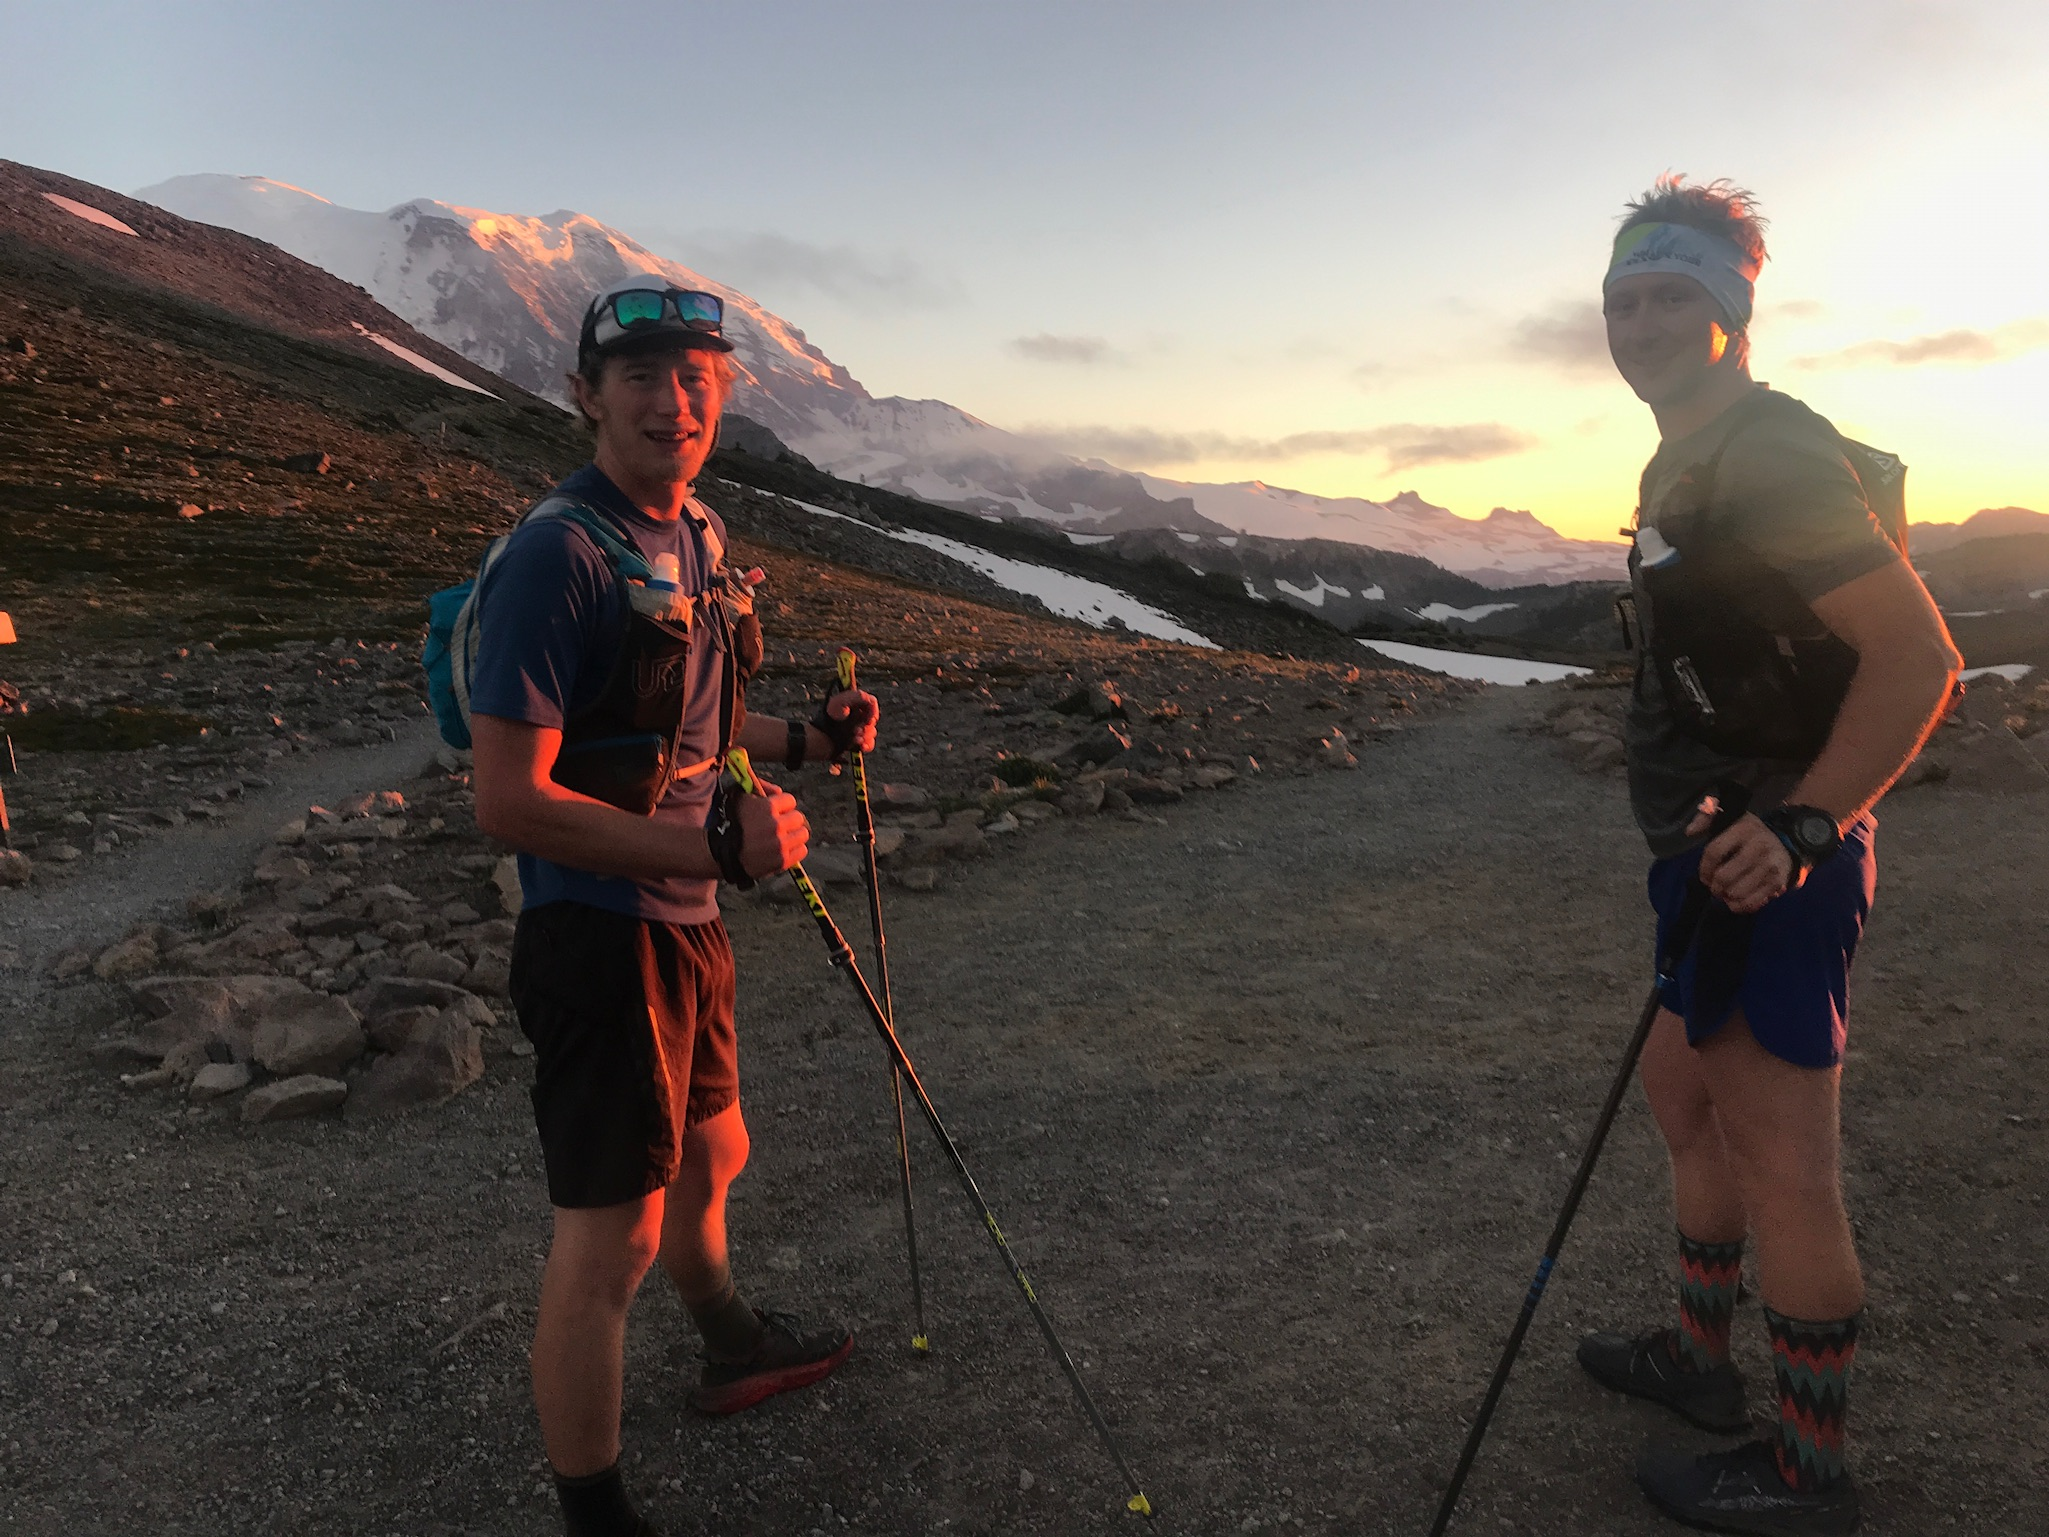 Erik and Sam ready to tackle the remaining 67 miles of the Wonderland Trail at Sunset.